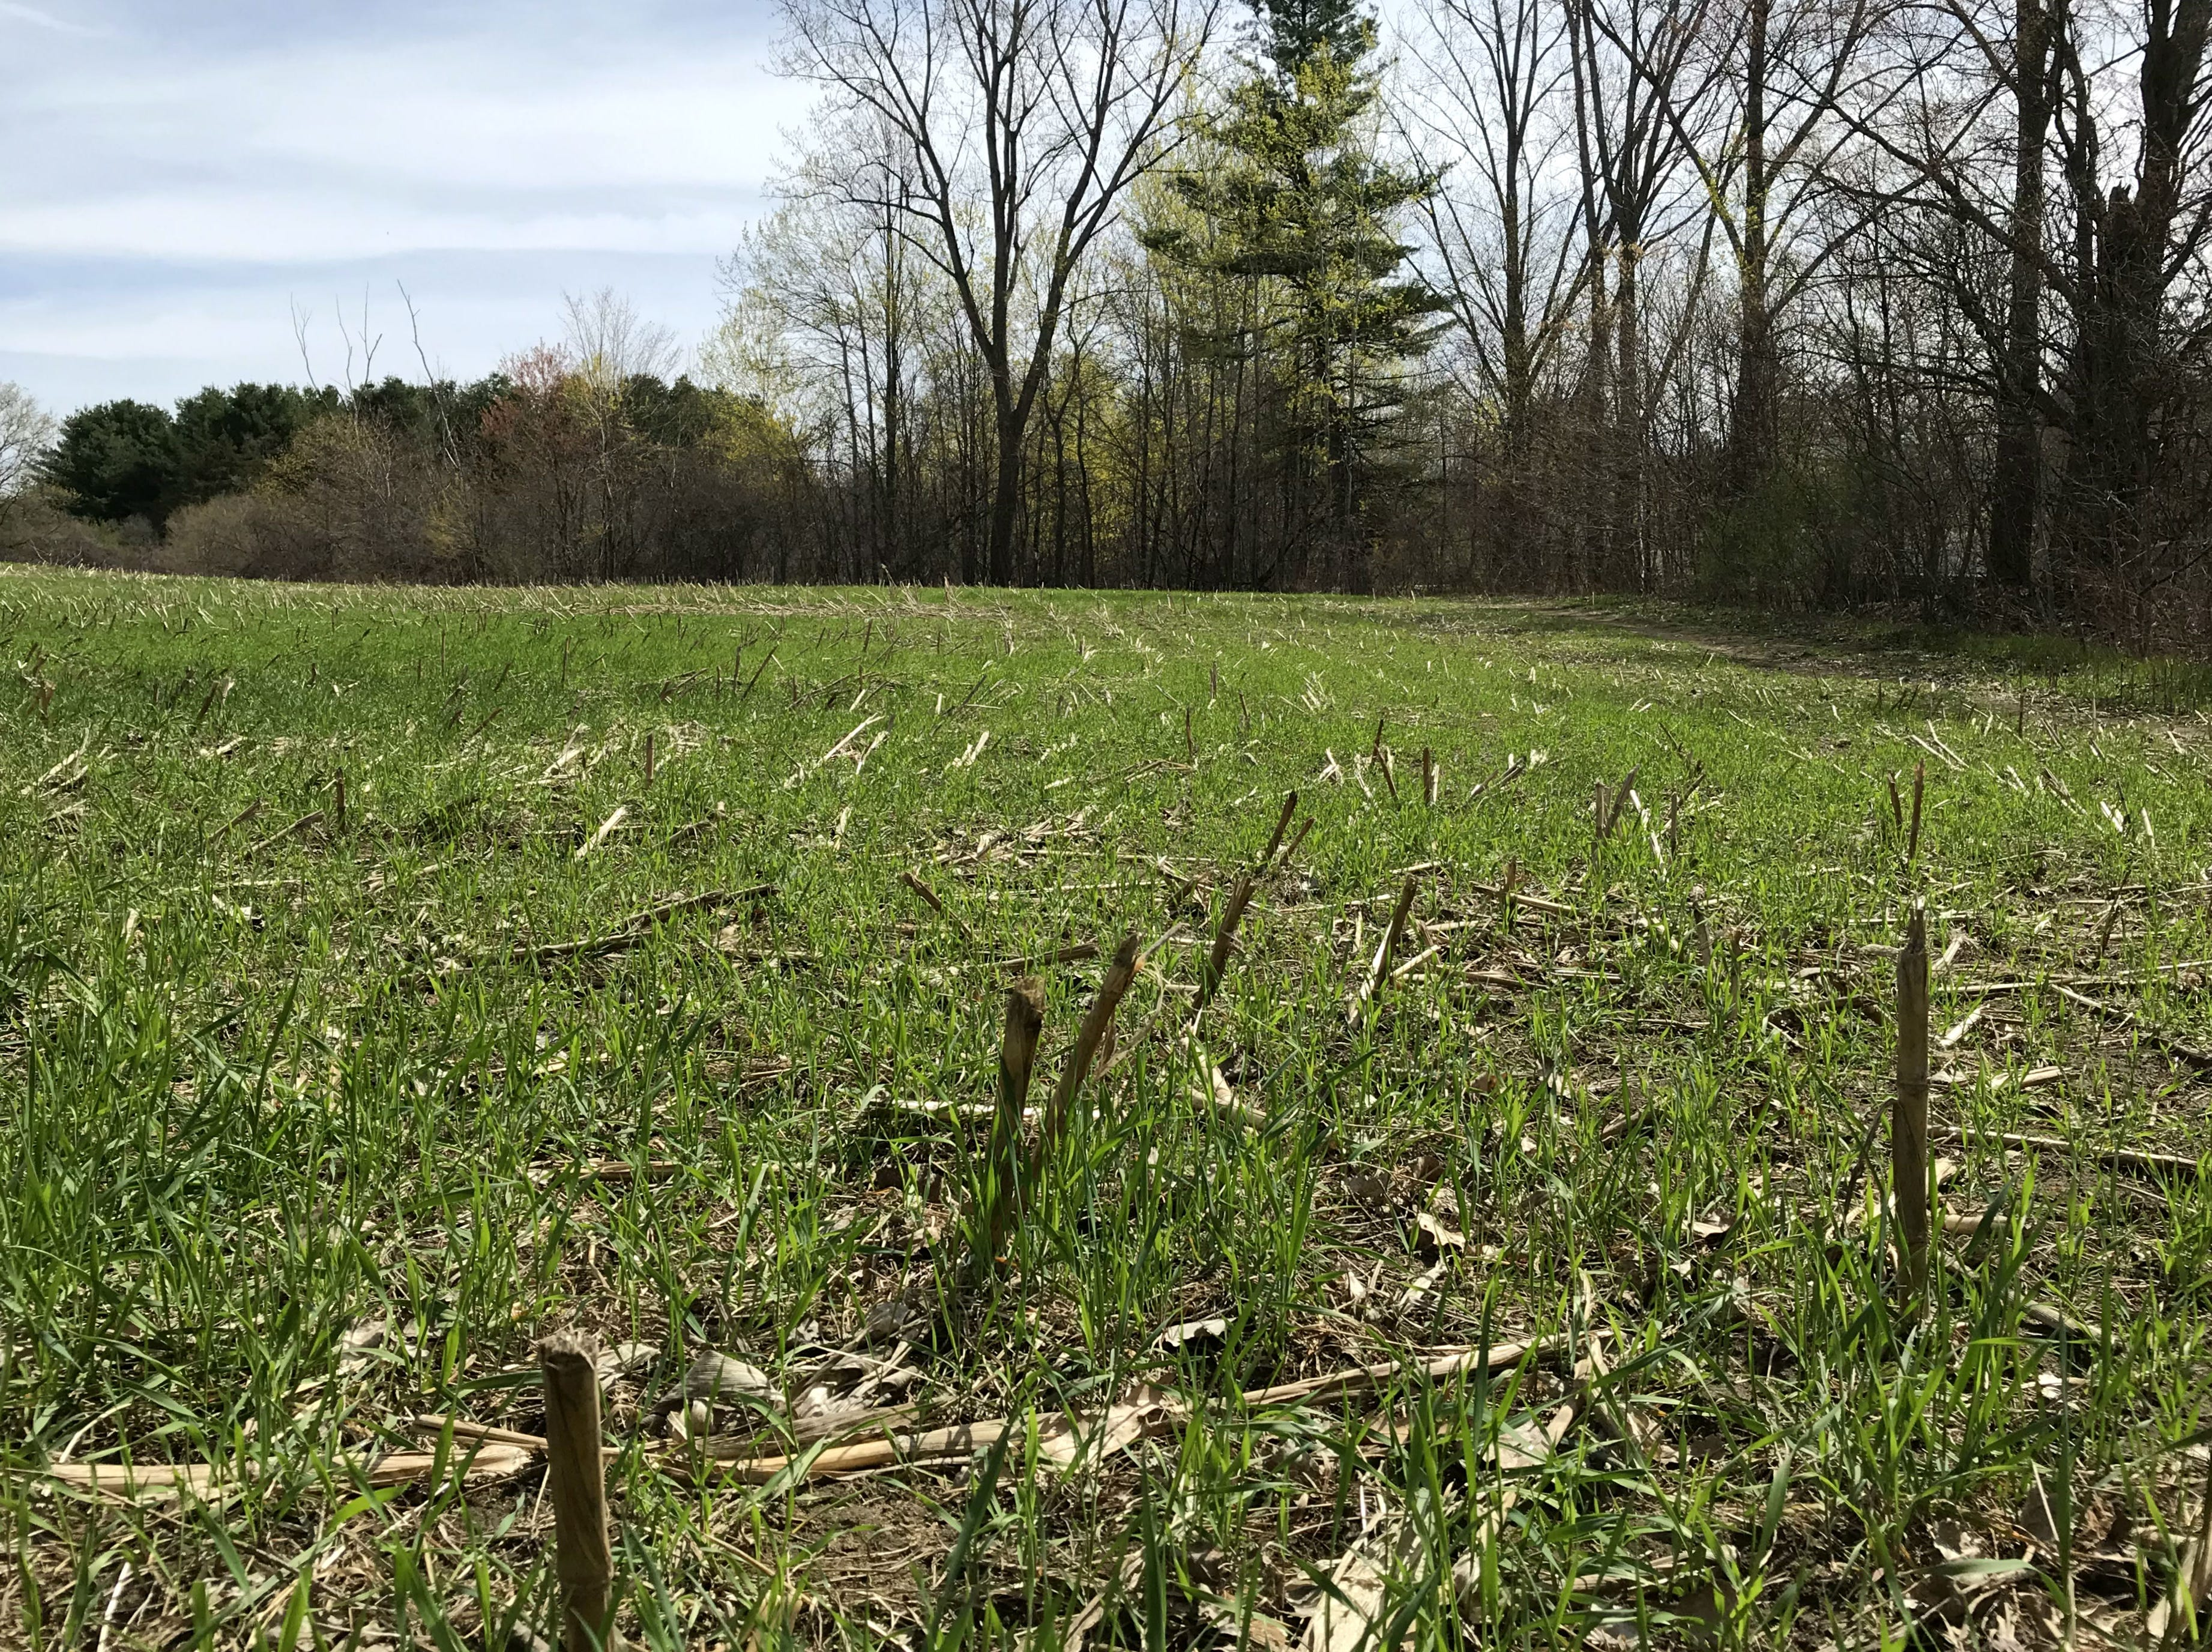 Green grass grows among the corn stover in a field in South Burlington Sunday, May 5, 2019.